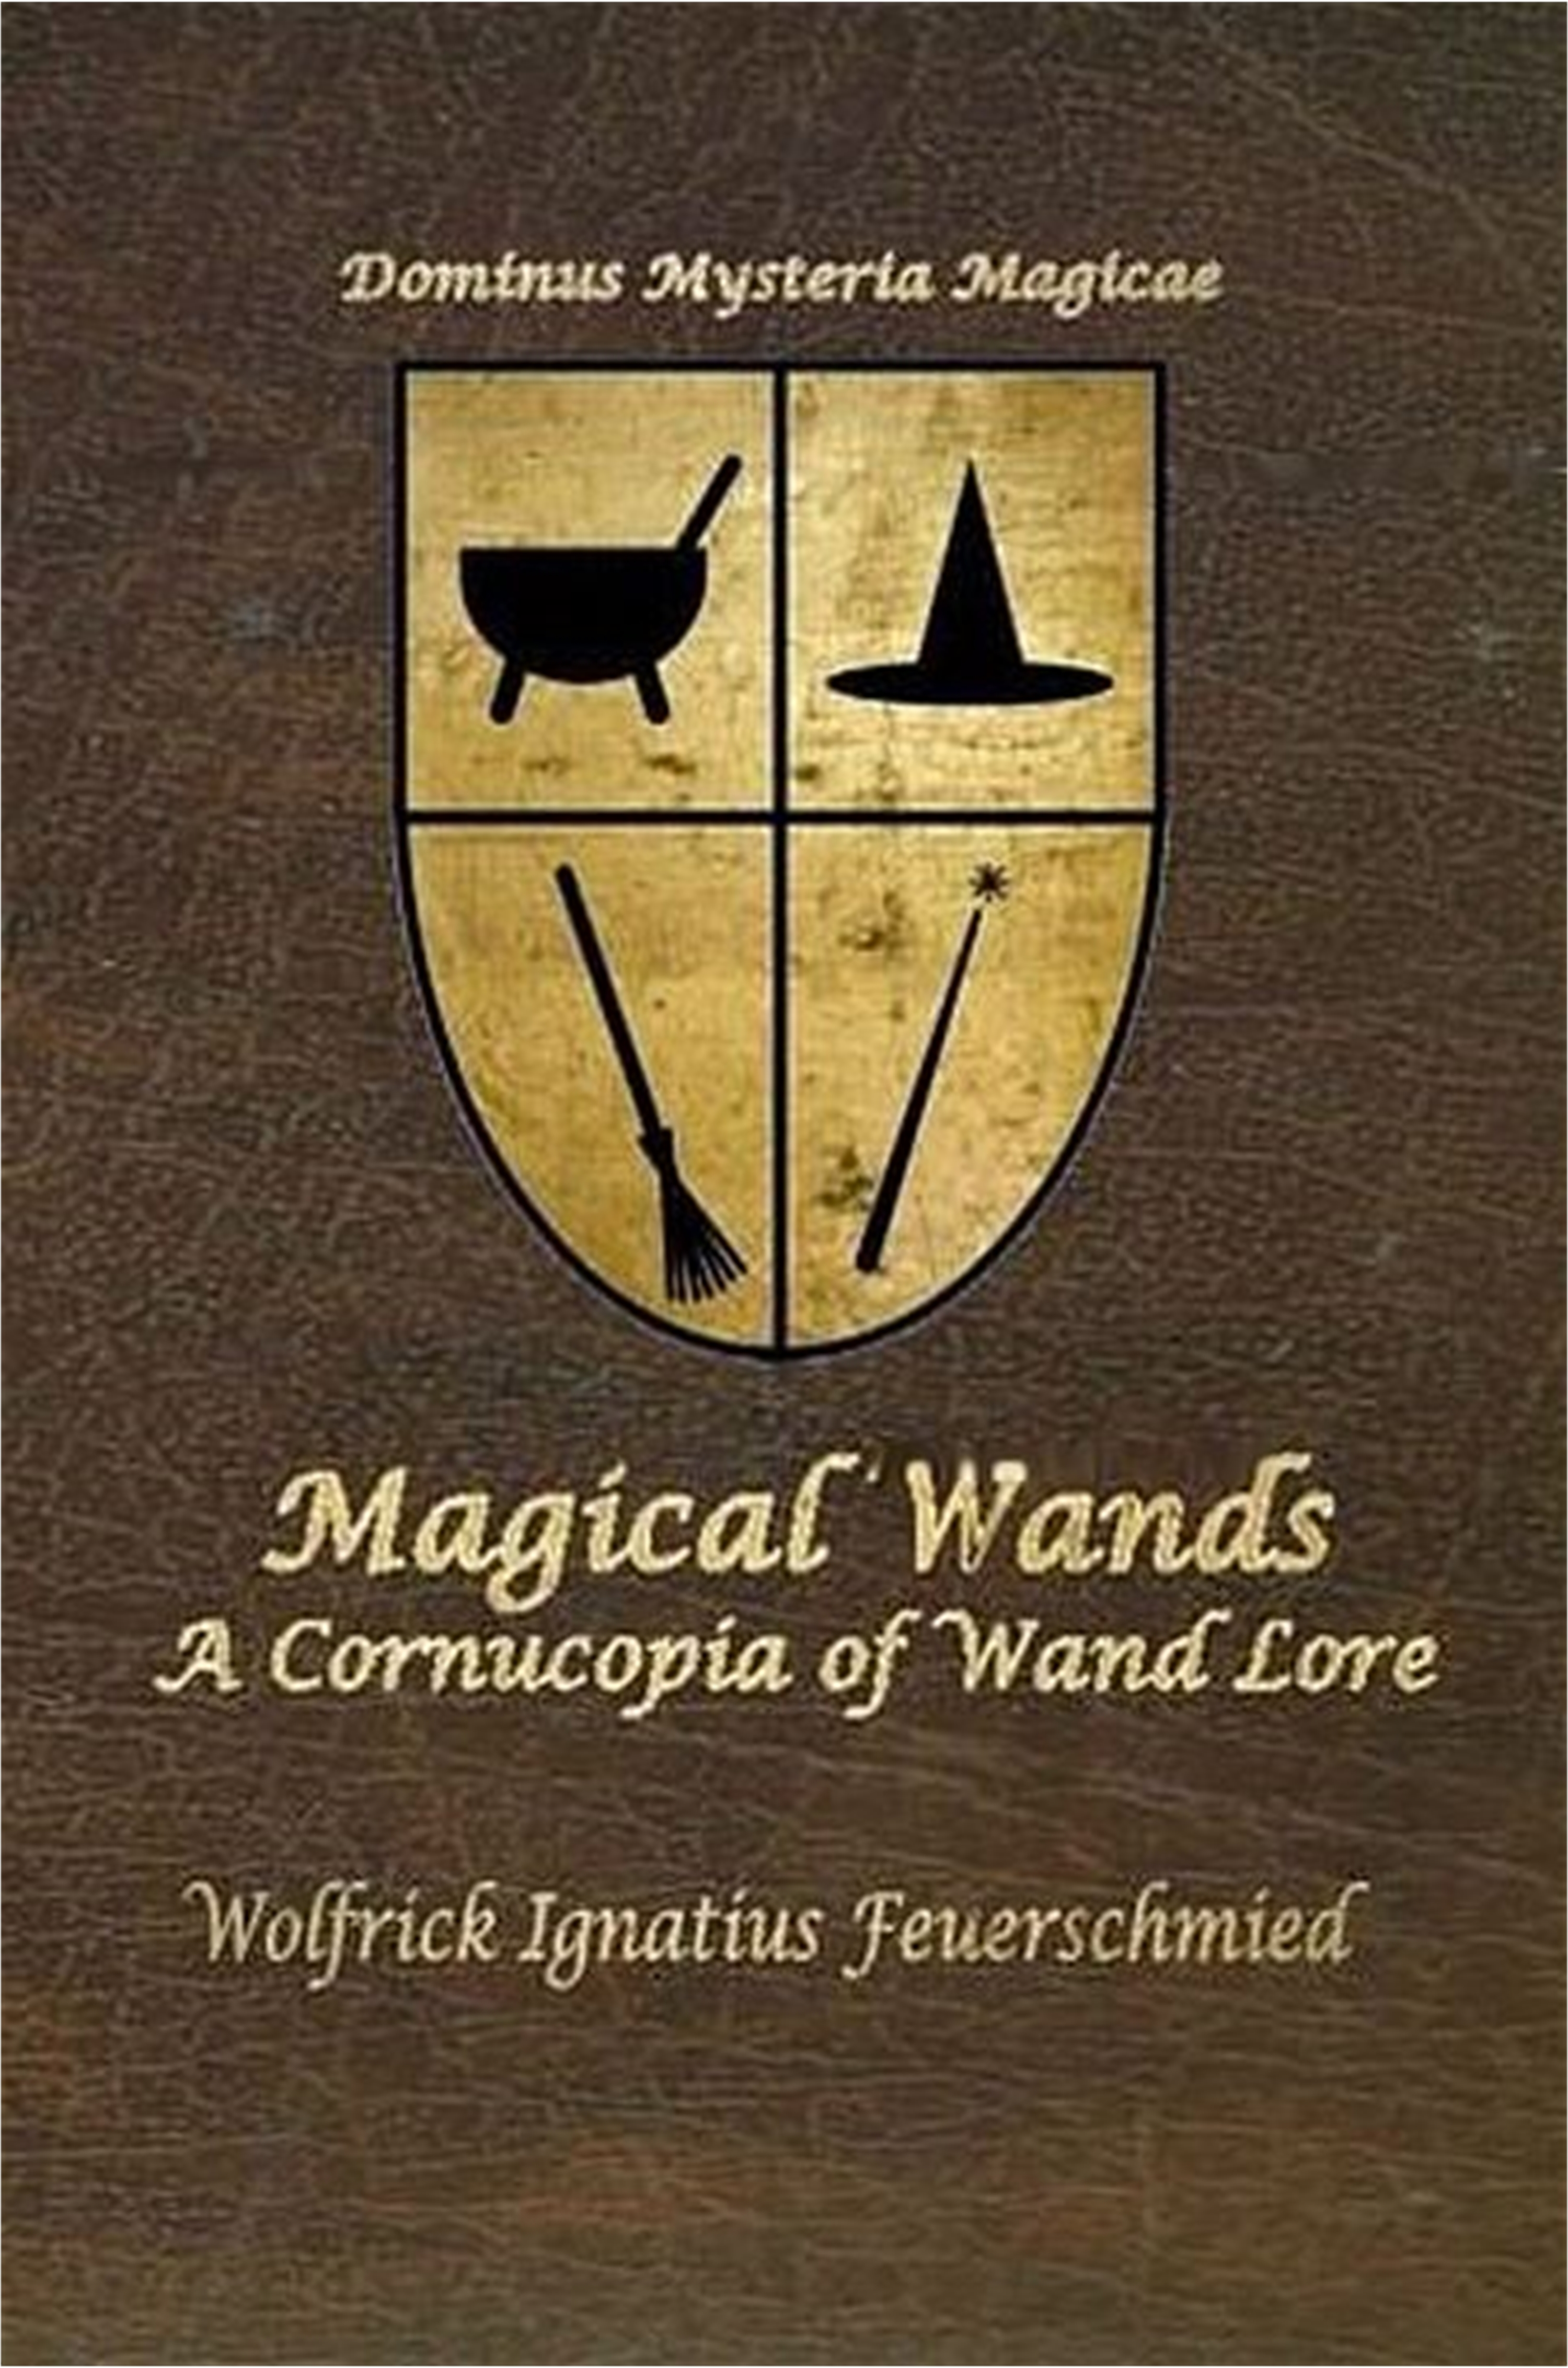 The front cover of Magical Wands: A Cornucopia of Wand Lore